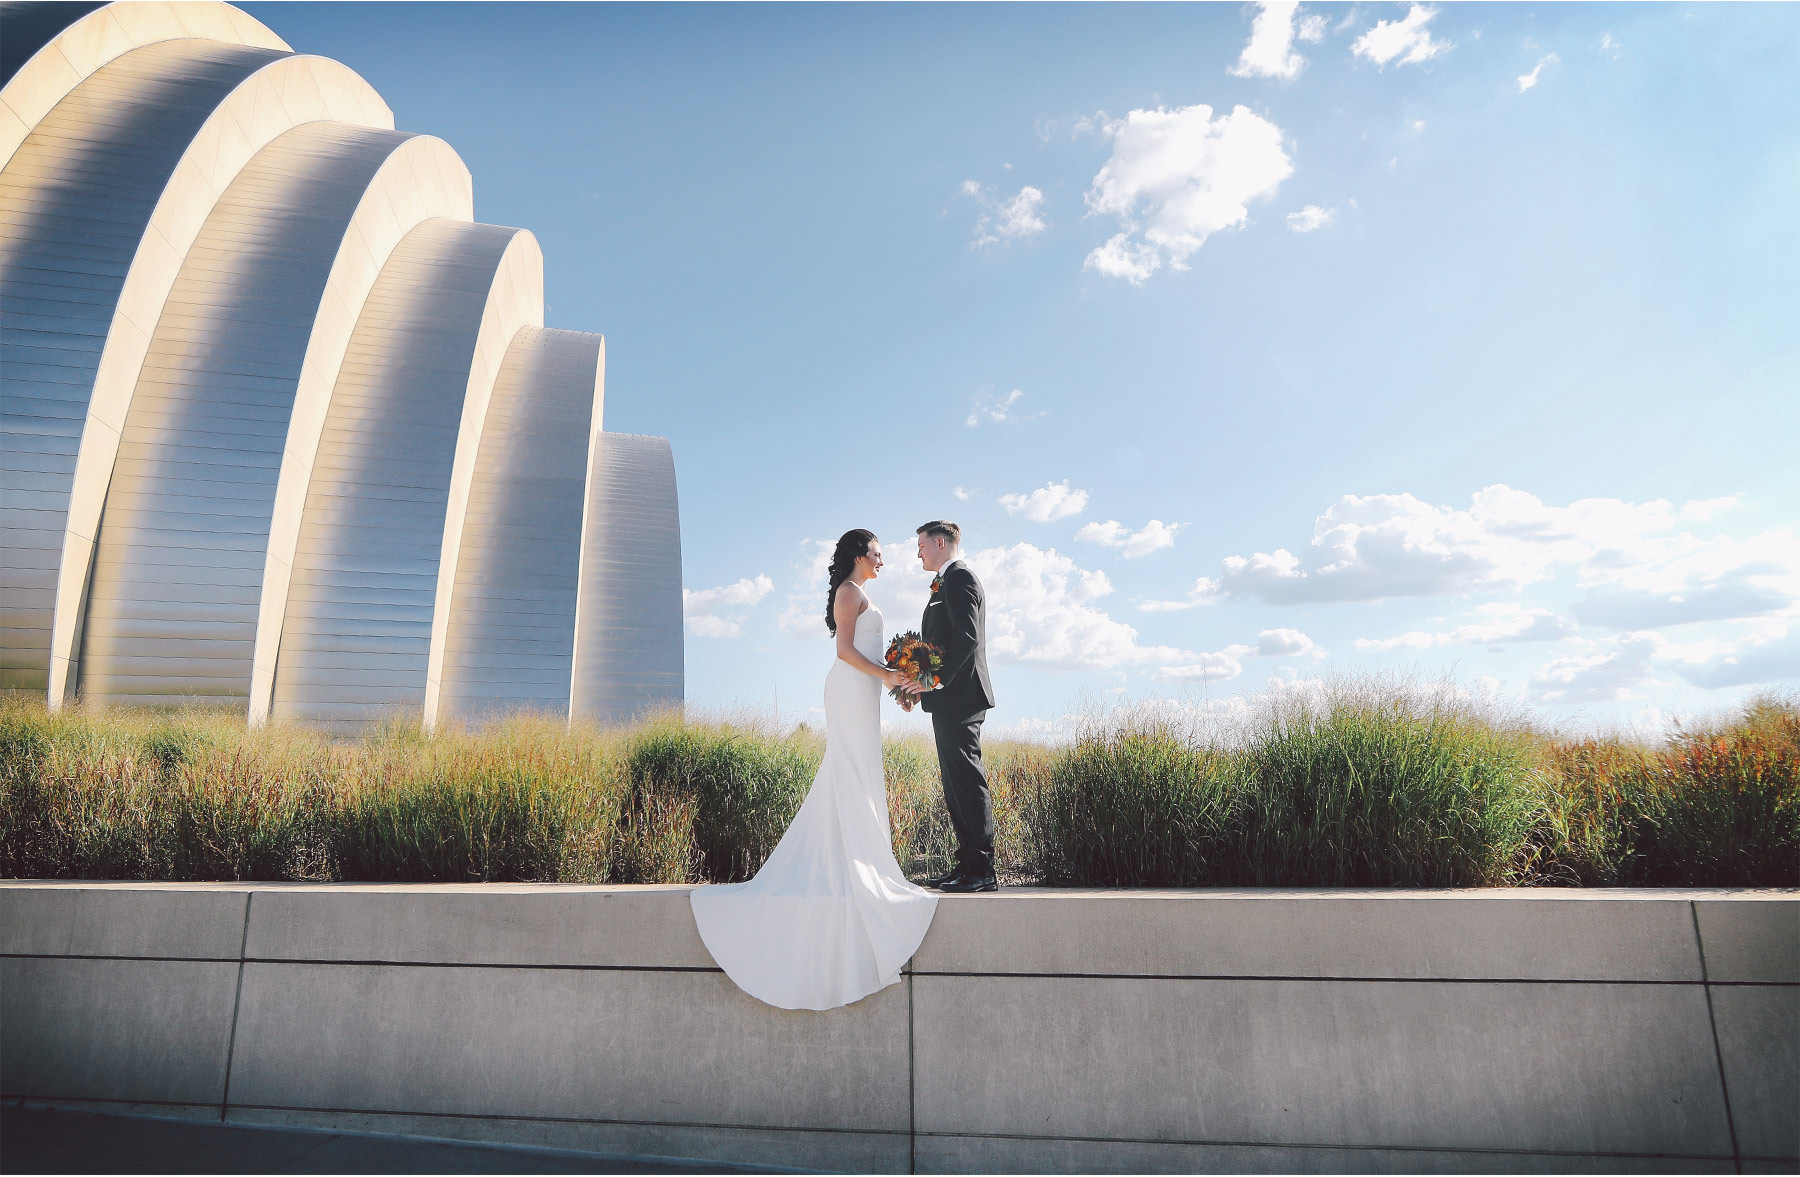 14-Kansas-City-Missouri-Destination-Wedding-Photography-by-Vick-Photography-Downtown-Architecture-Carly-and-Kenny.jpg